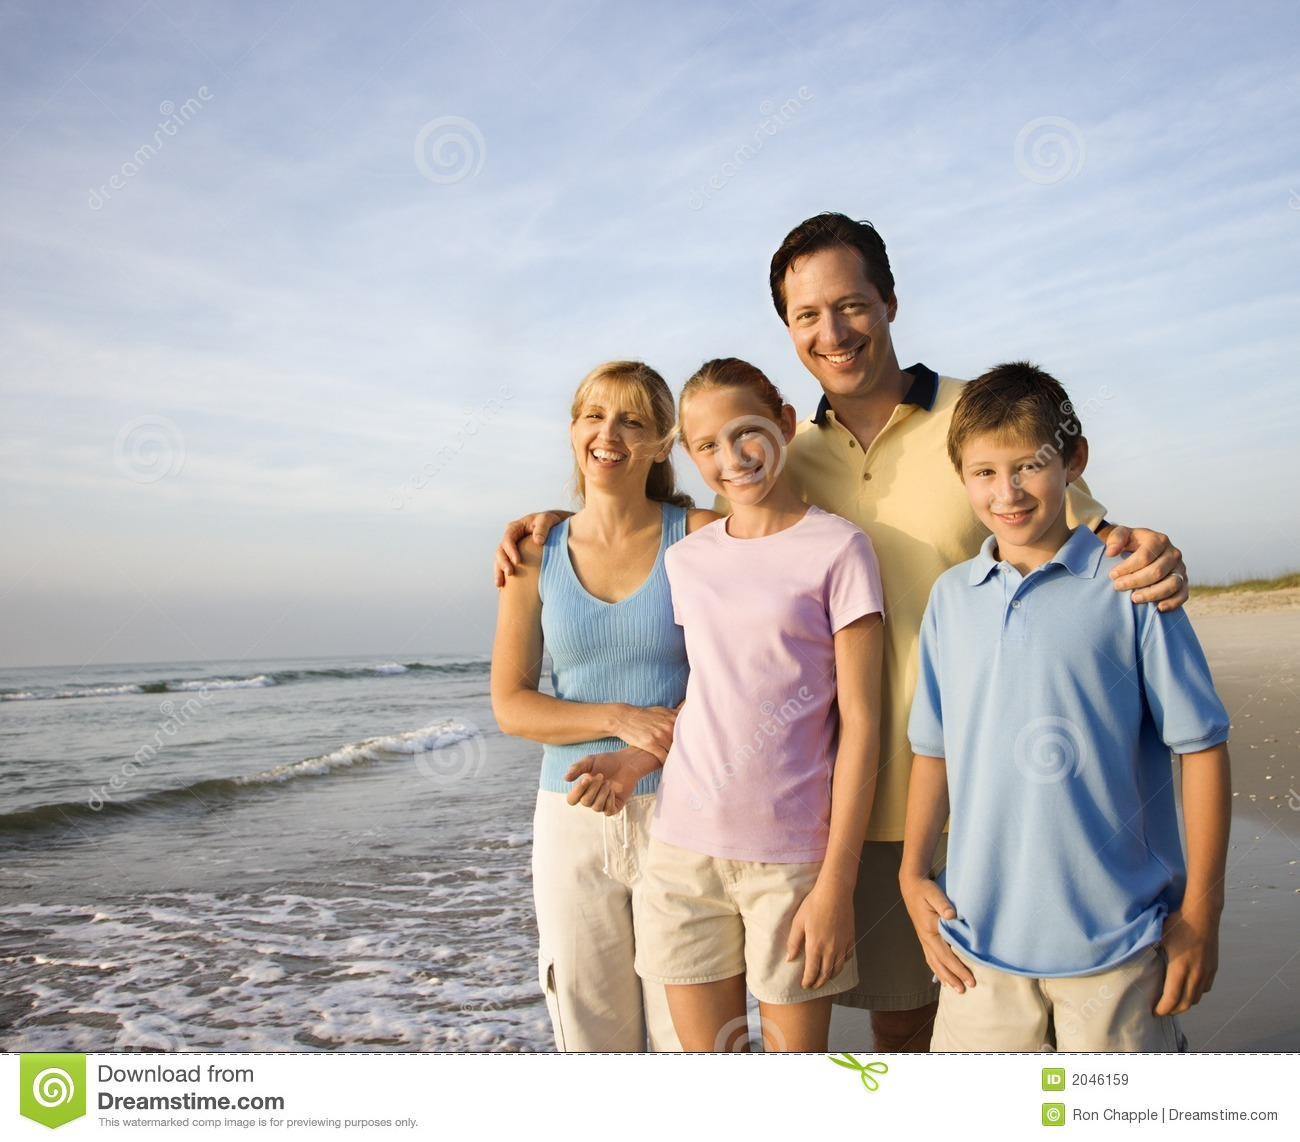 Free Royalty Free Stock Photo Smiling family on beach